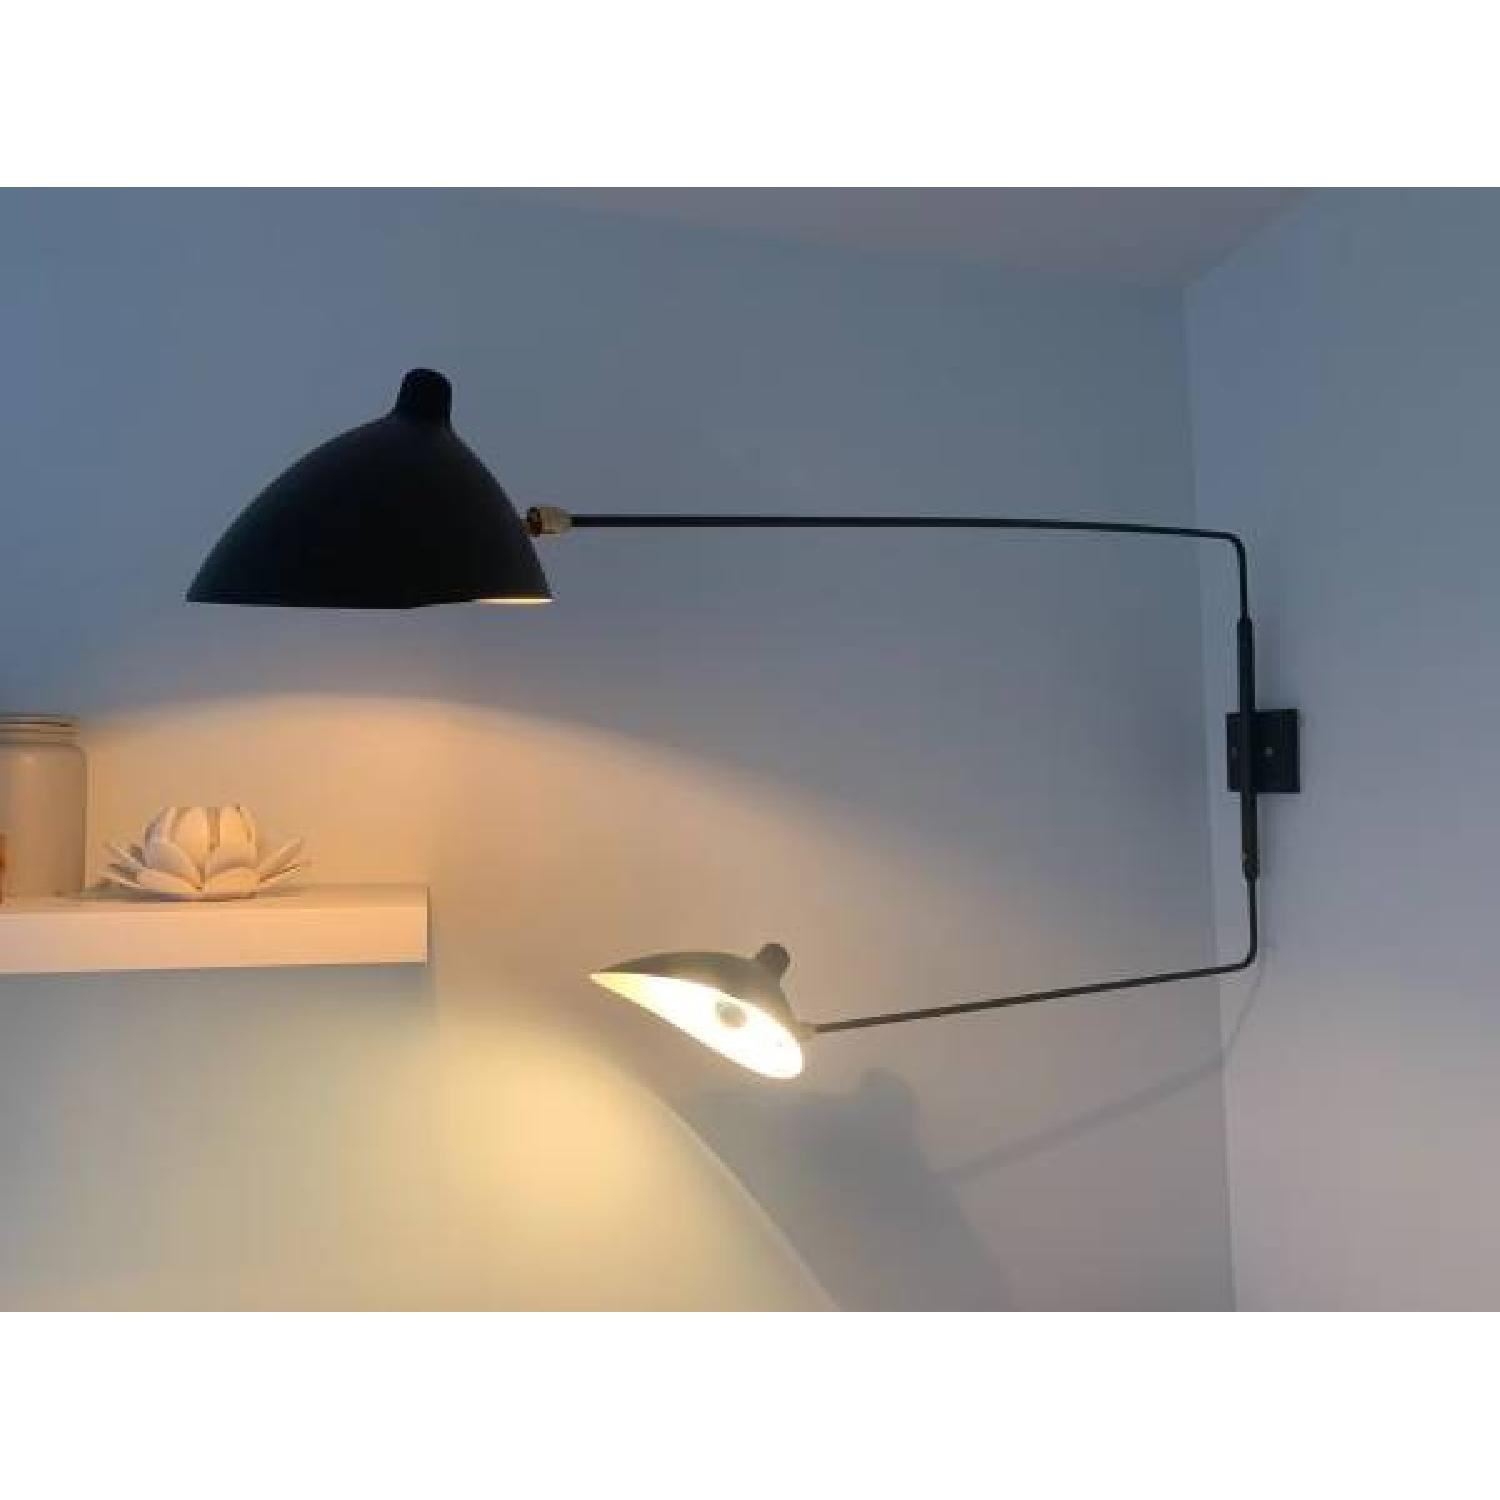 France & Son Serge Mouille Inspired Swing Arm Wall Lamp-0